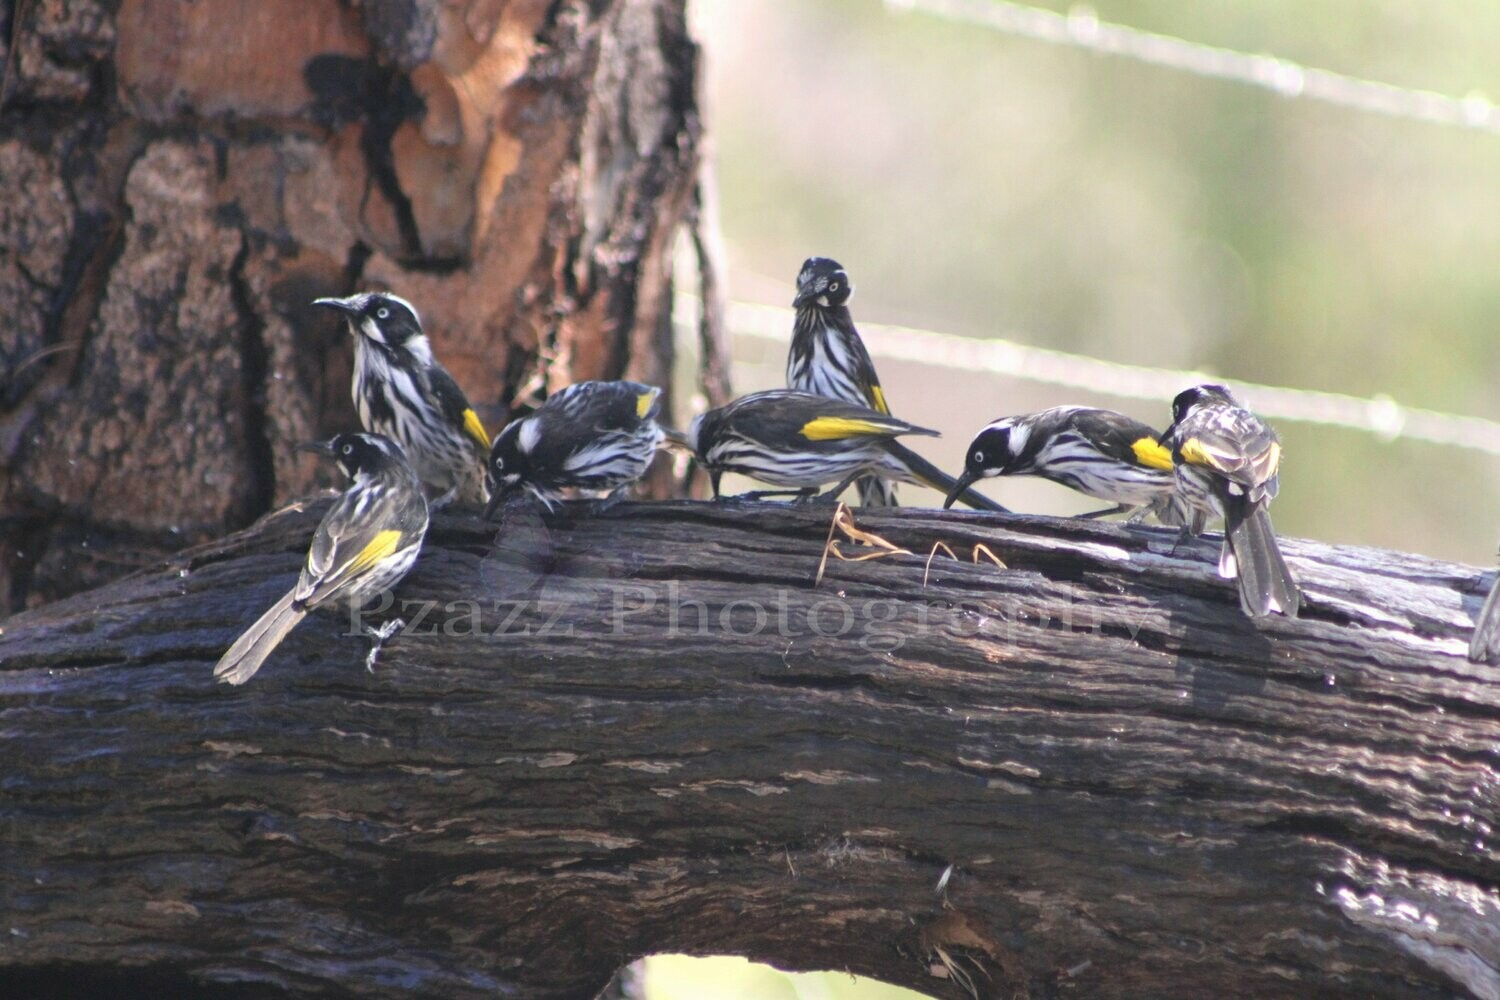 Pzazz Photography - Honey Eaters - Full Drill Diamond Painting - Specially ordered for you. Delivery is approximately 4 - 6 weeks.